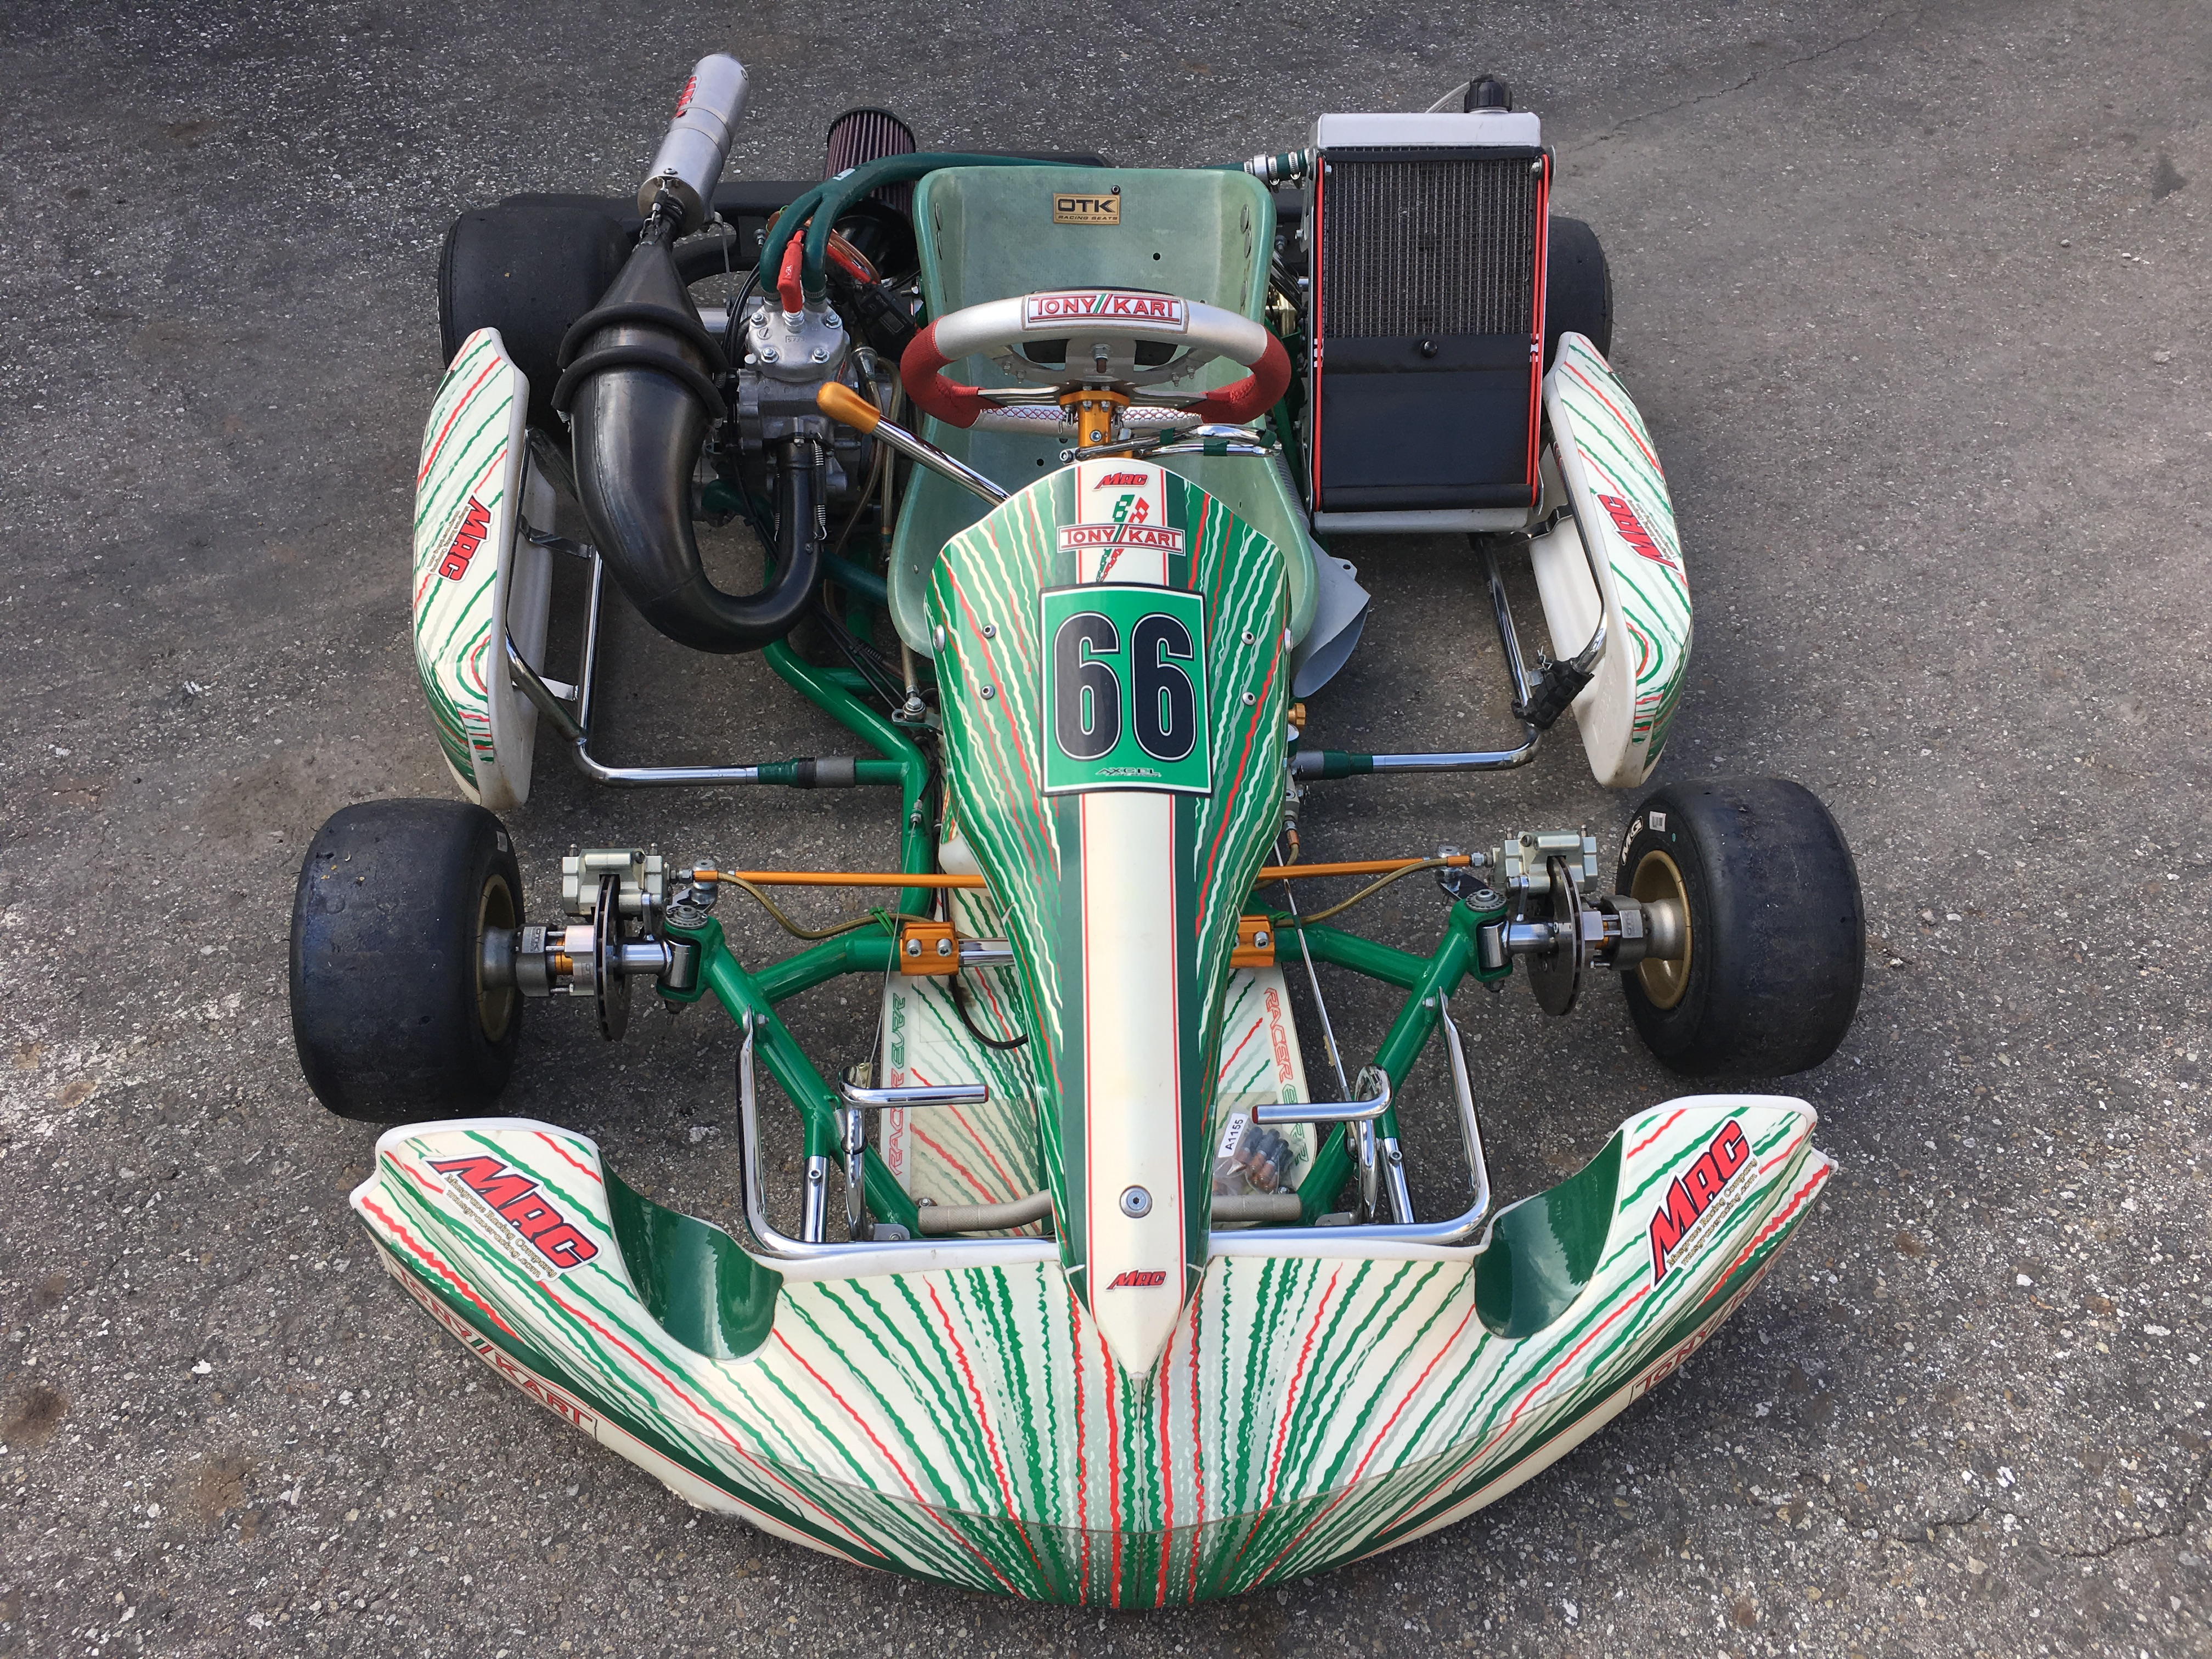 TONY KART 2012 w/ COMPLETE MRC CR125 ENGINE PACKAGE & EXTRA'S